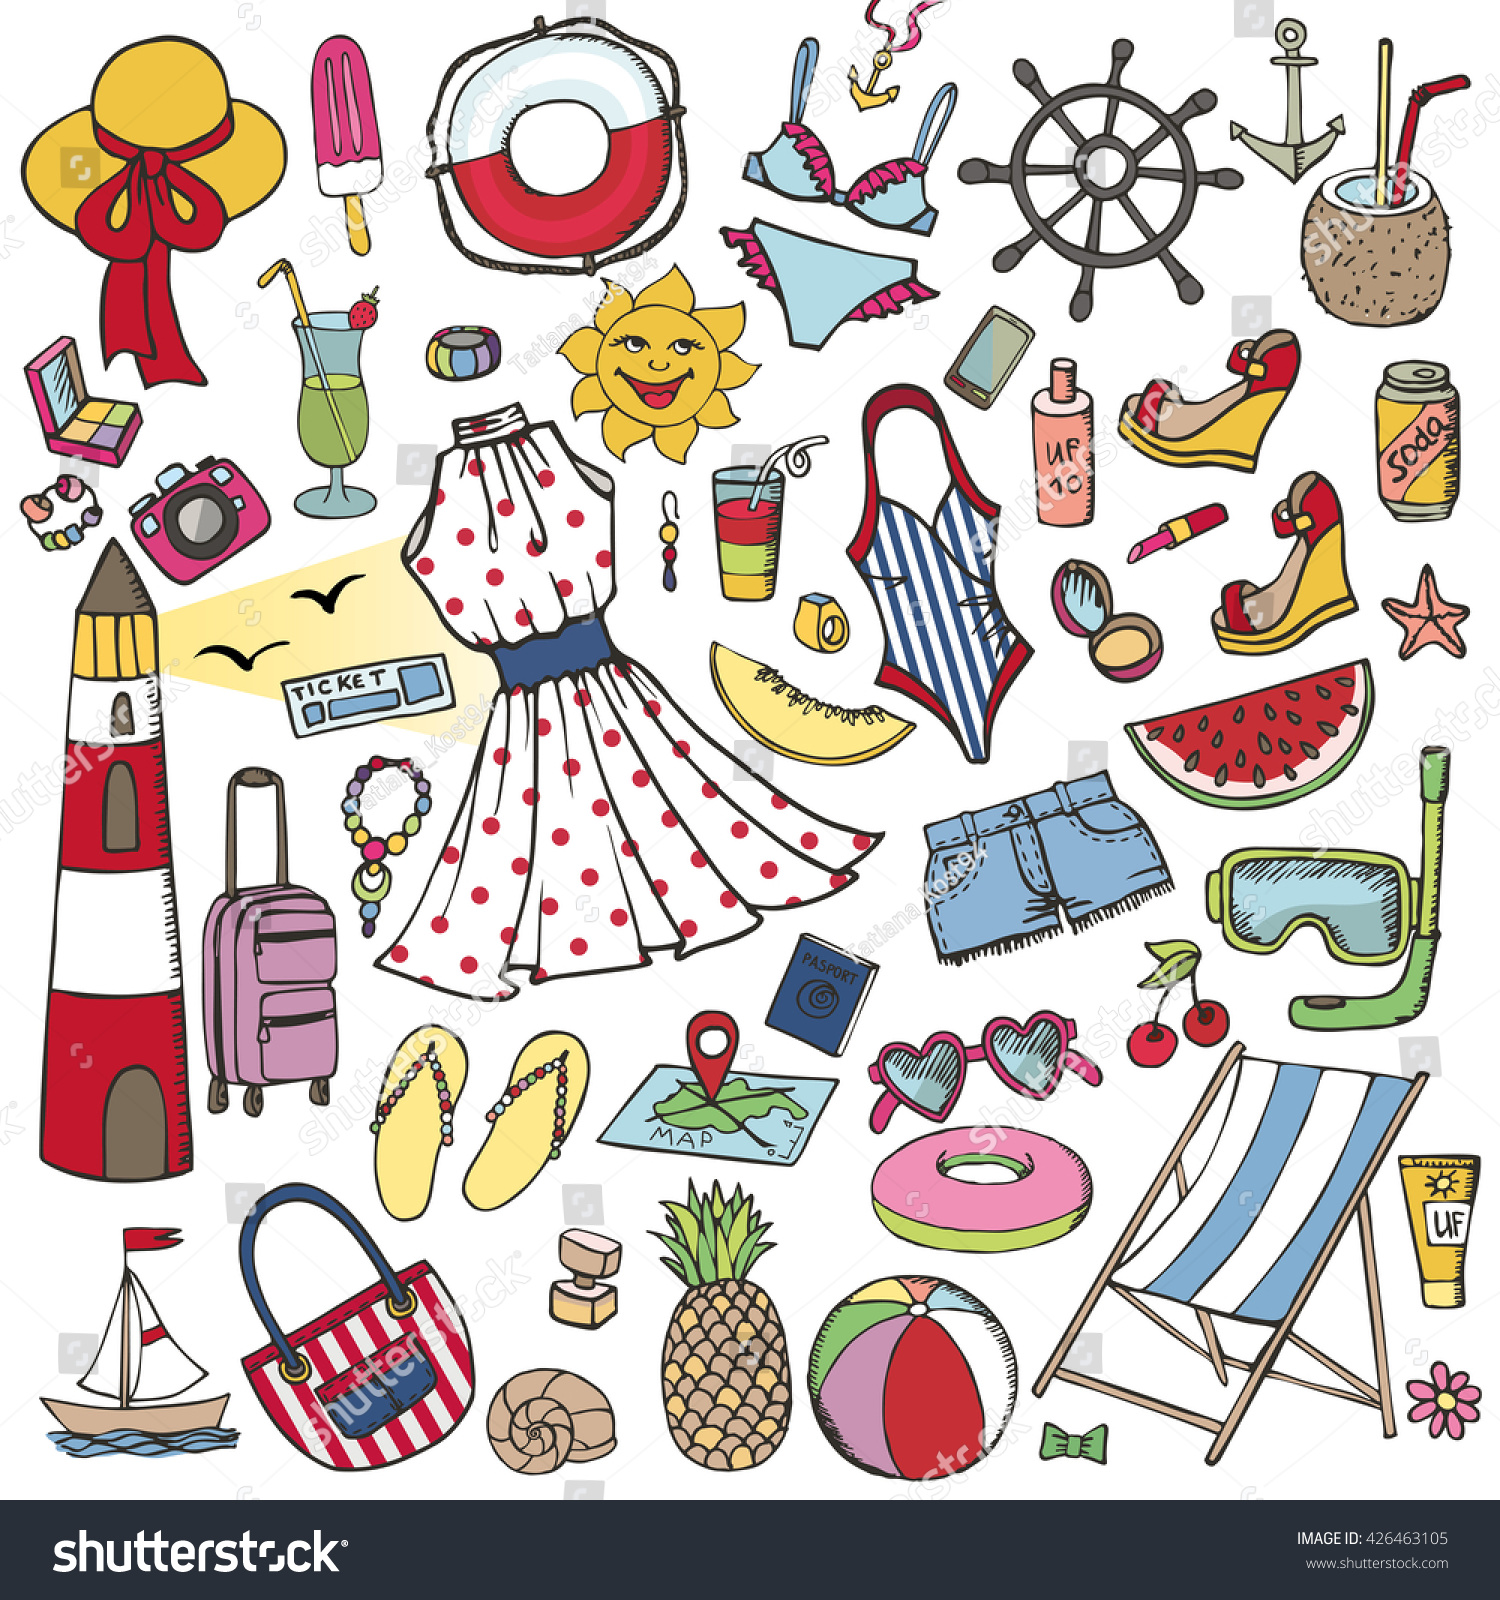 Vector Vintage Pop Art Beach Holiday Illustration Stock: Summer Vacation Doodlesvector Hand Drawing Fashion Stock